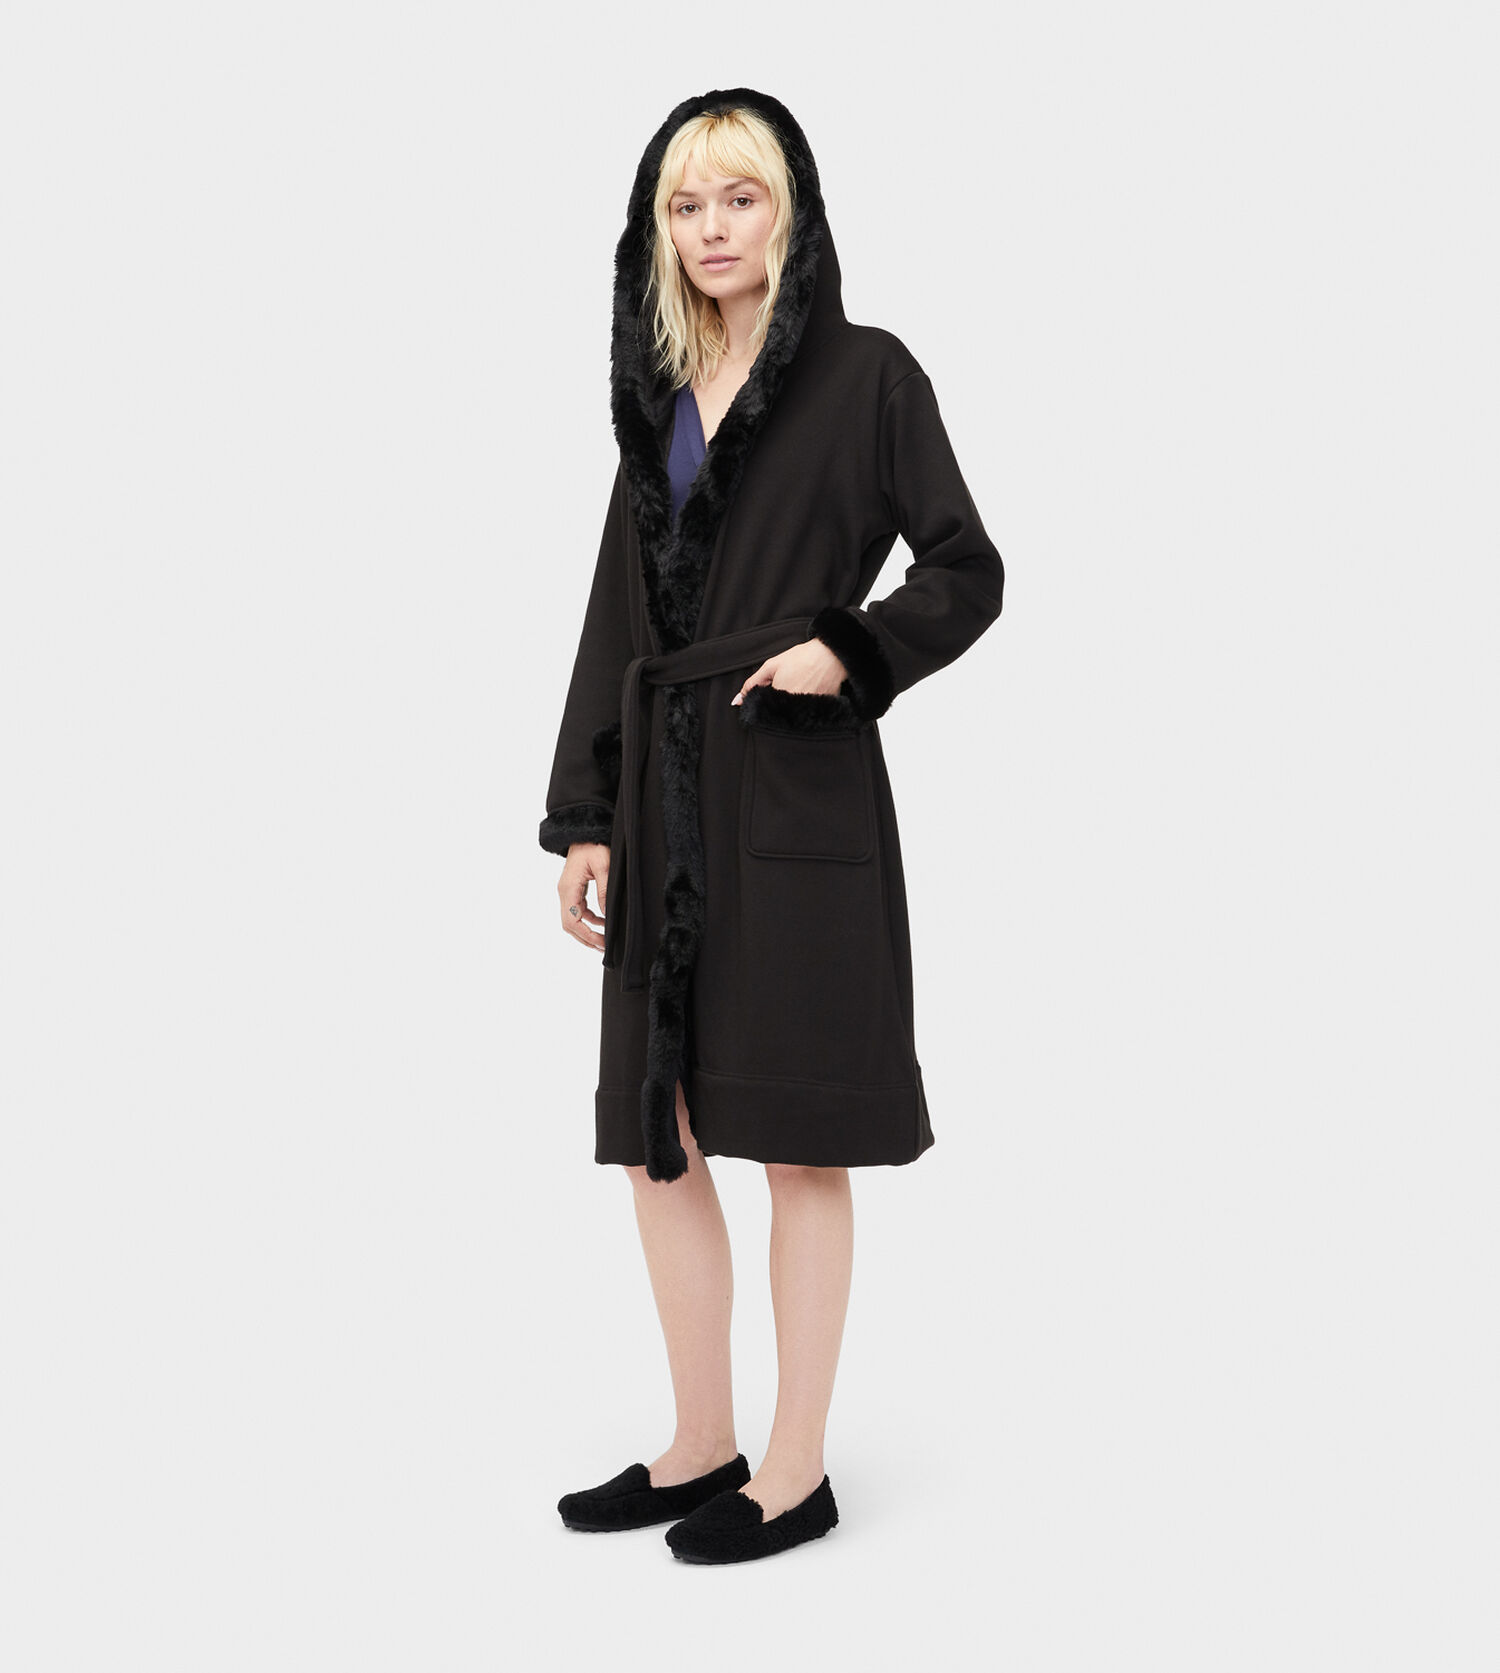 Zoom Duffield Deluxe II Robe - Image 3 of 4 807128298